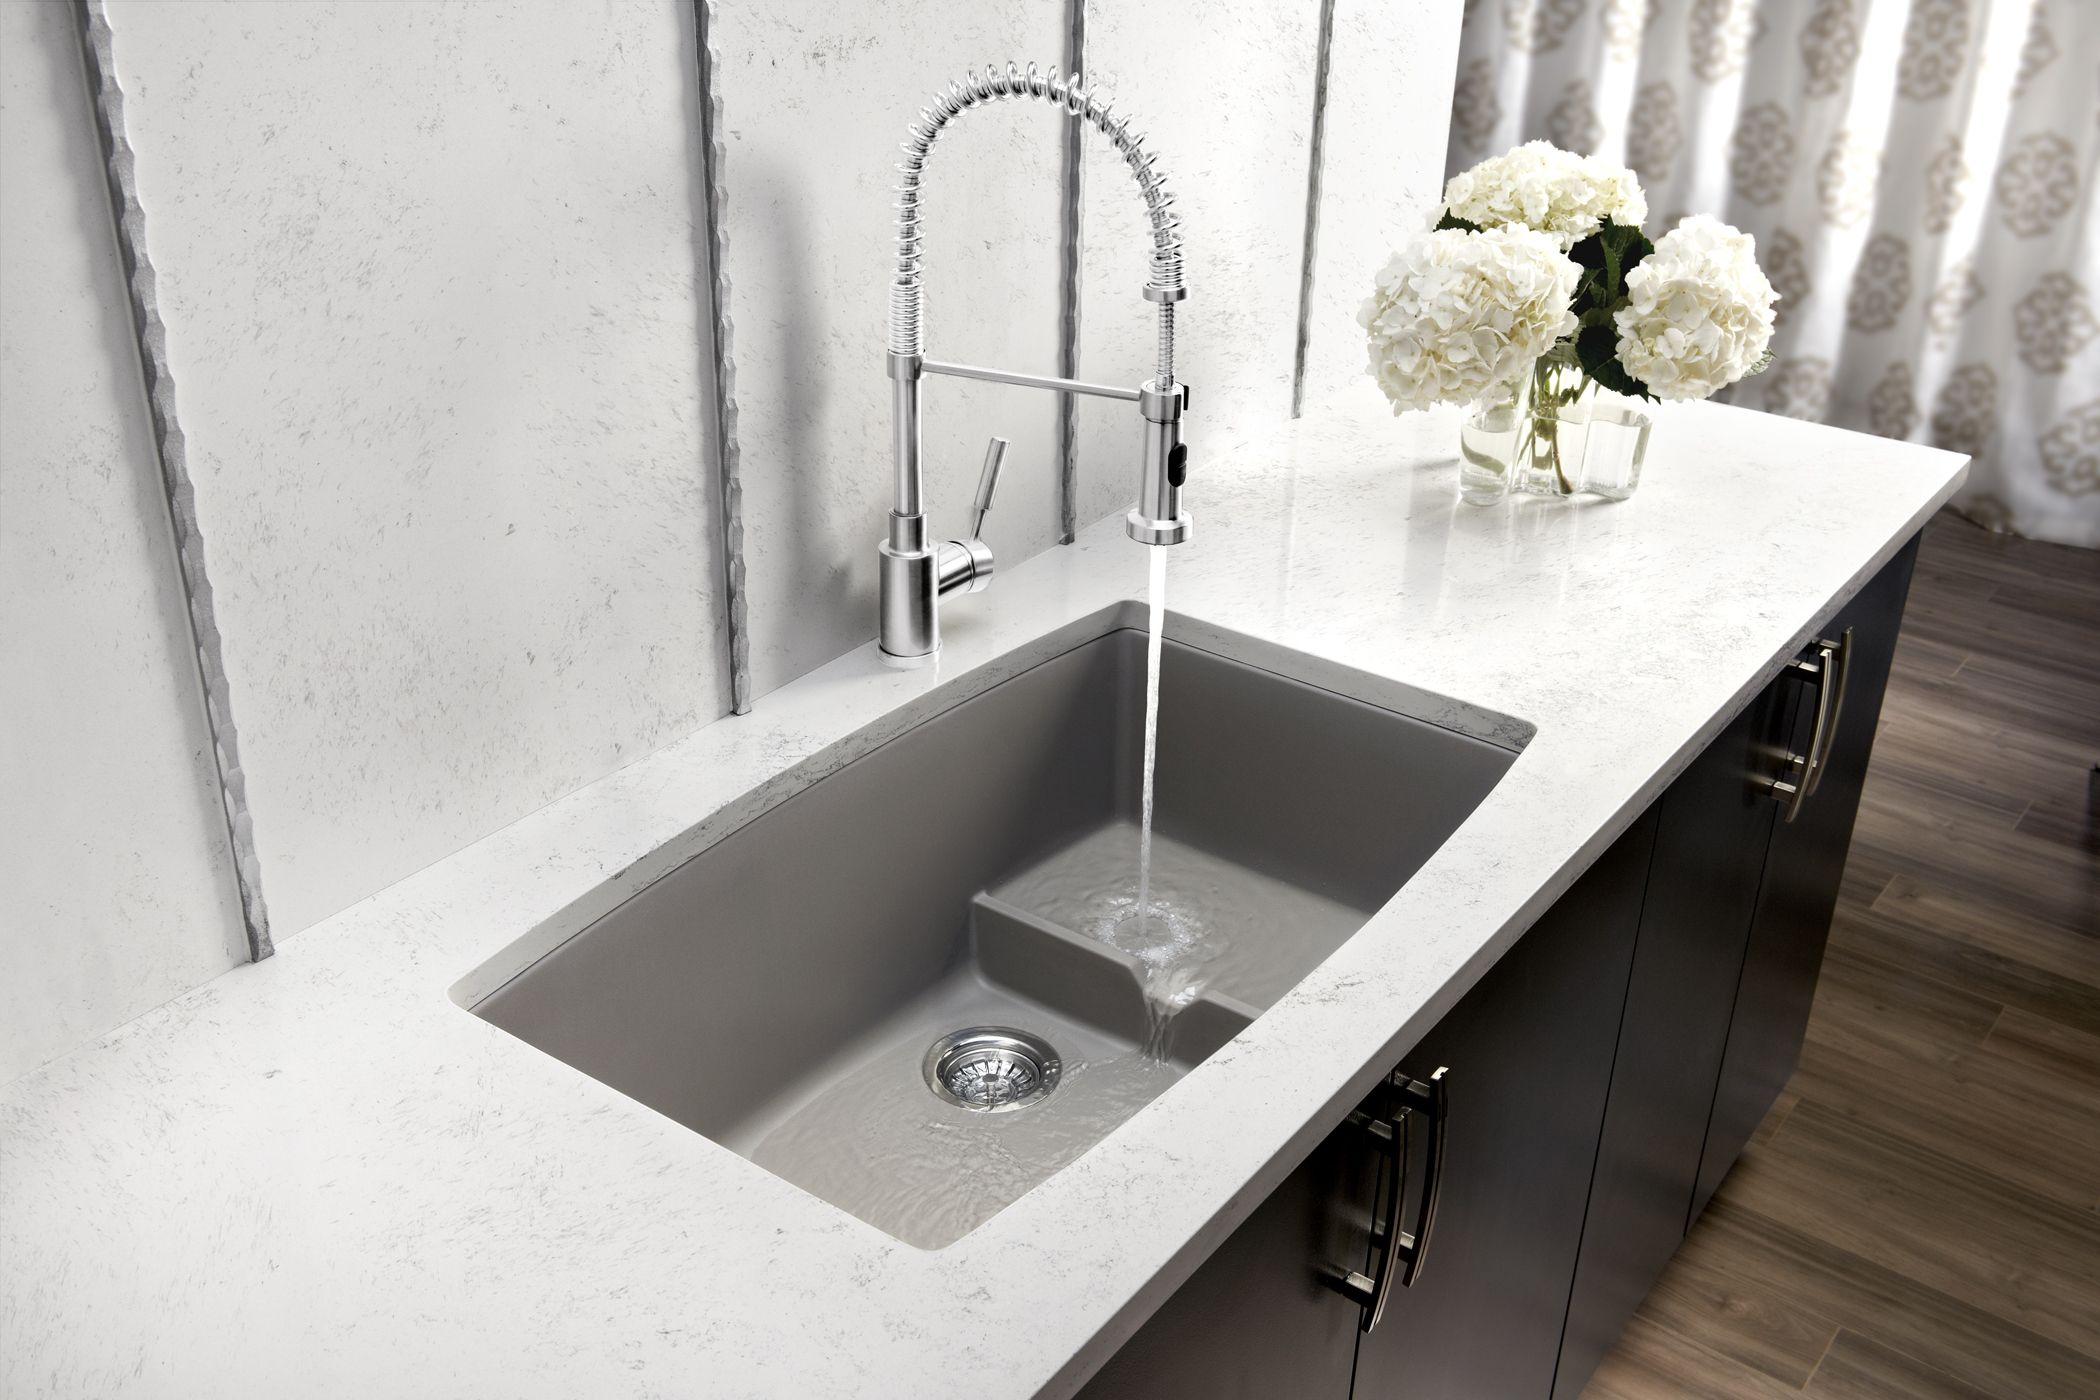 Awesome New Kitchen Sink Fabulous Designer Kitchen Sinks Hd Image Pictures Ideas Modern Kitchen Sinks Contemporary Kitchen Sinks Kitchen Sink Design